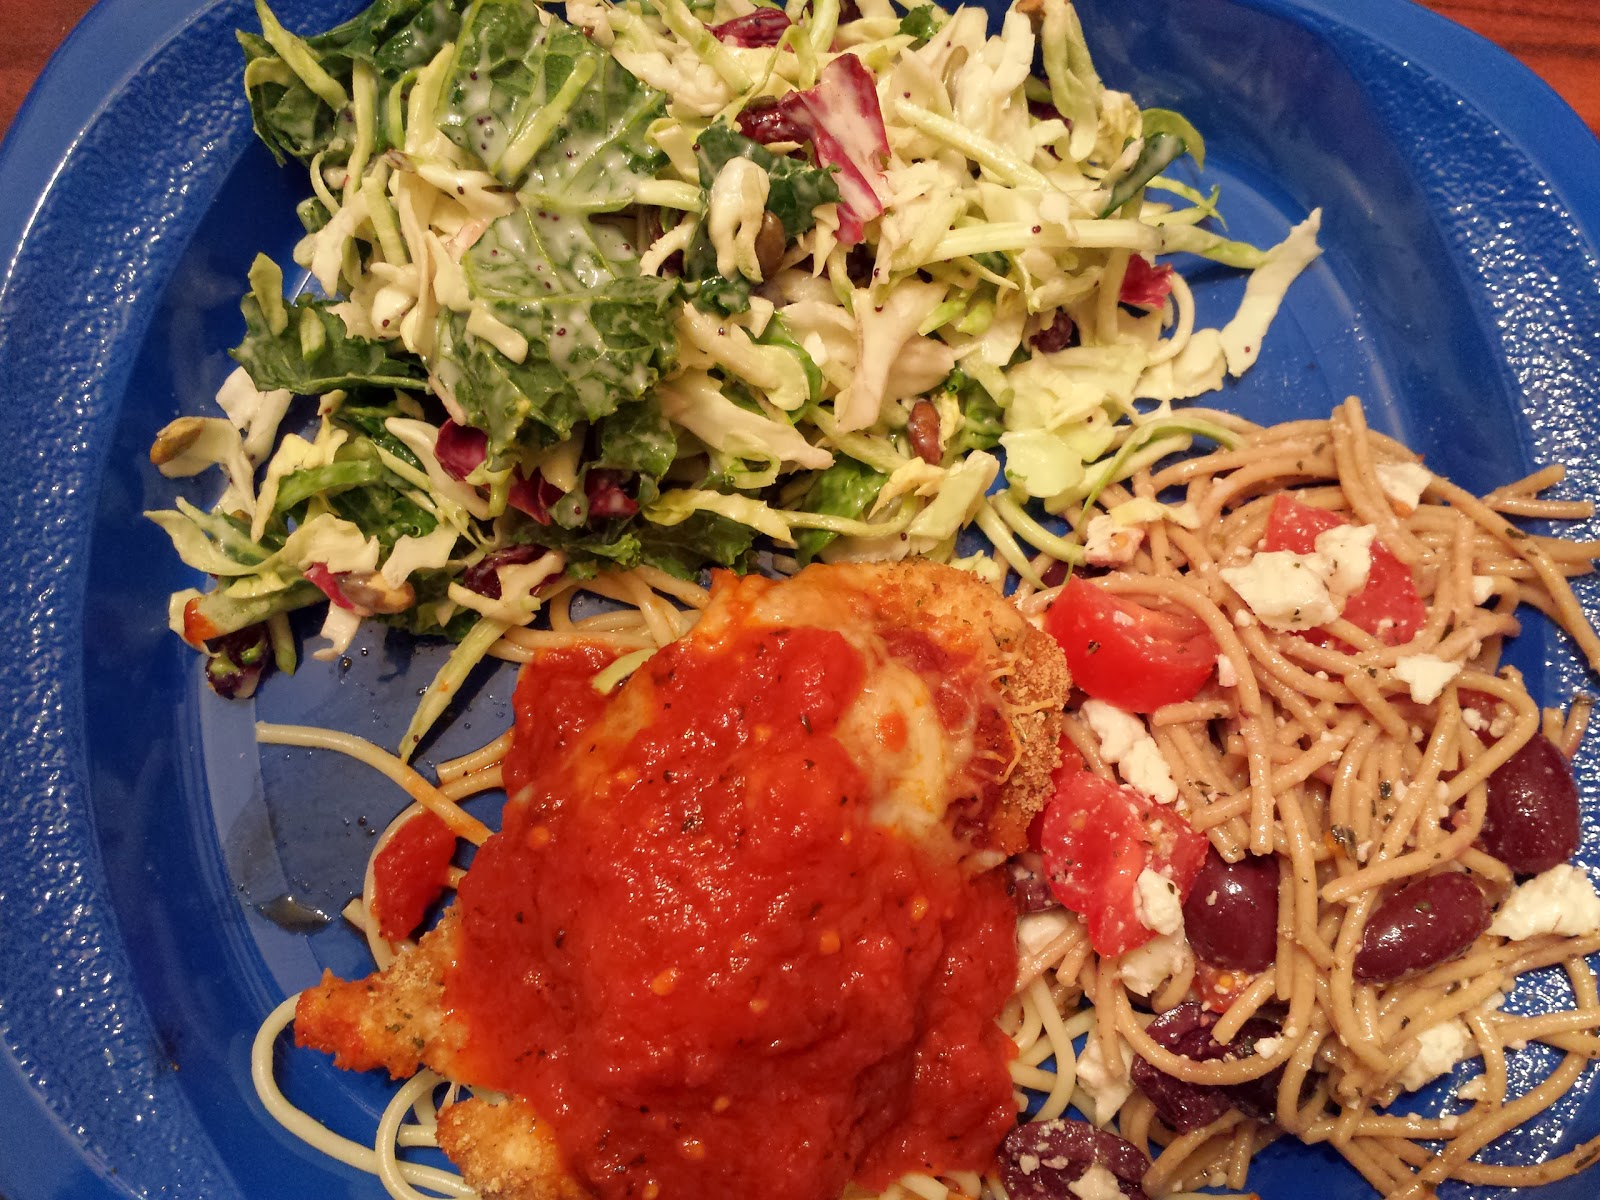 Mediterranean Pasta salad, clean eating, healthy dinners, weight loss, beach body, elite beach body coach, Deidra penrose, P90X3 meal plan, T25 Meal plan, health and fitness coach, nutrition, exercise, eat clean, meal plans, meal prep, top coach